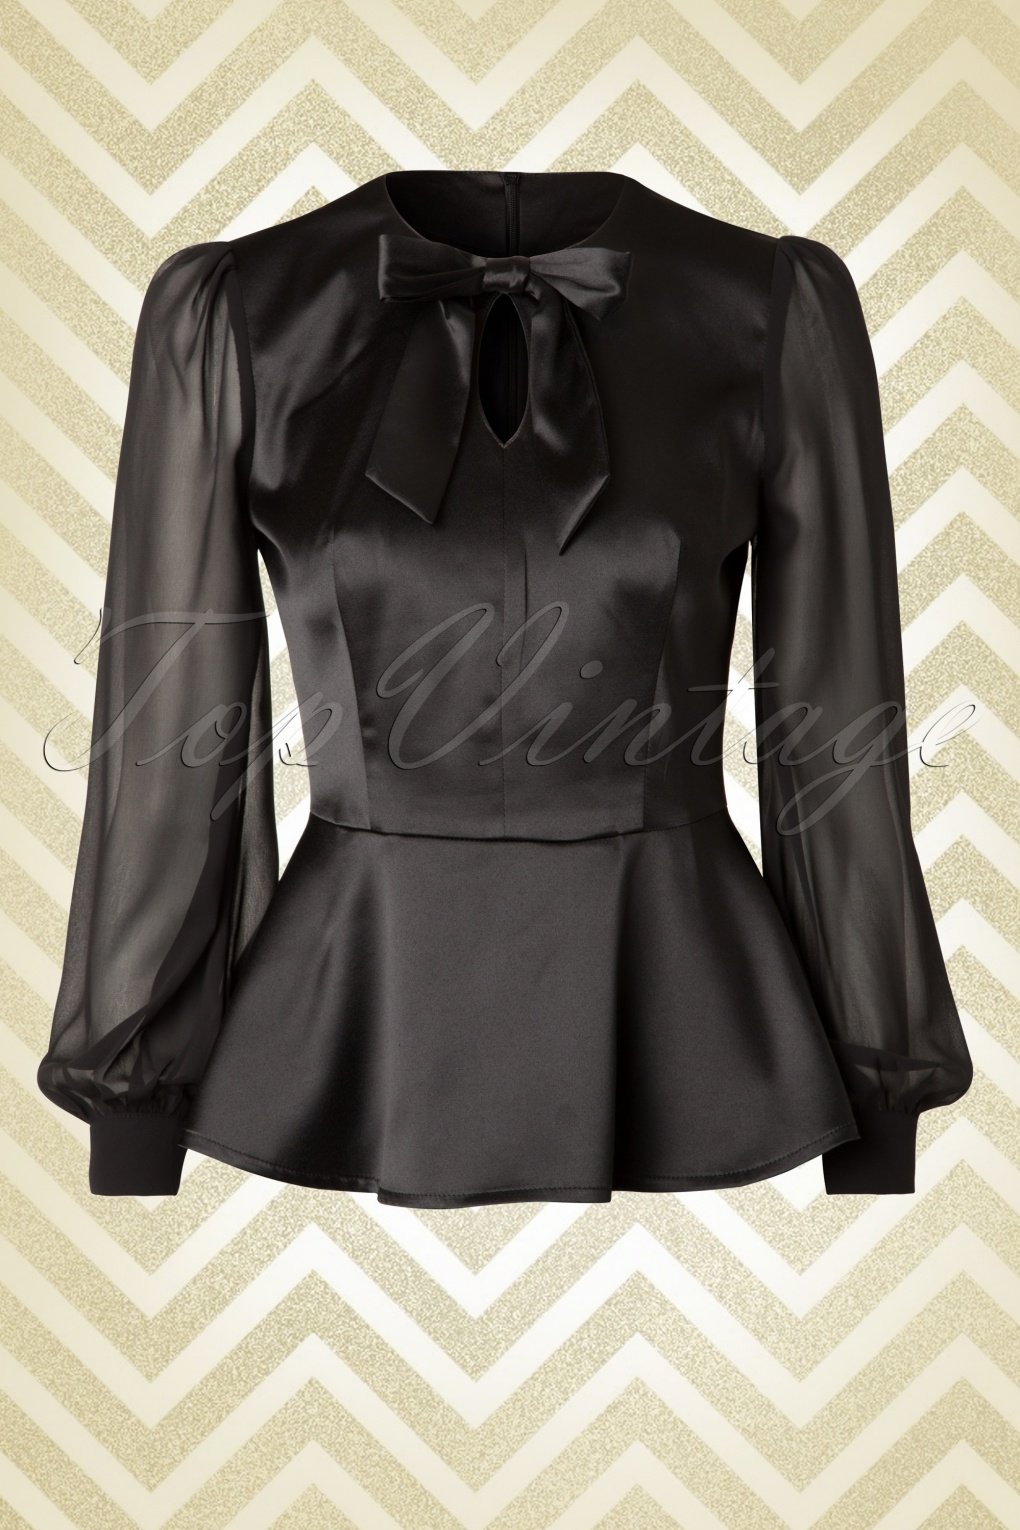 Black Long Sleeve Blouses